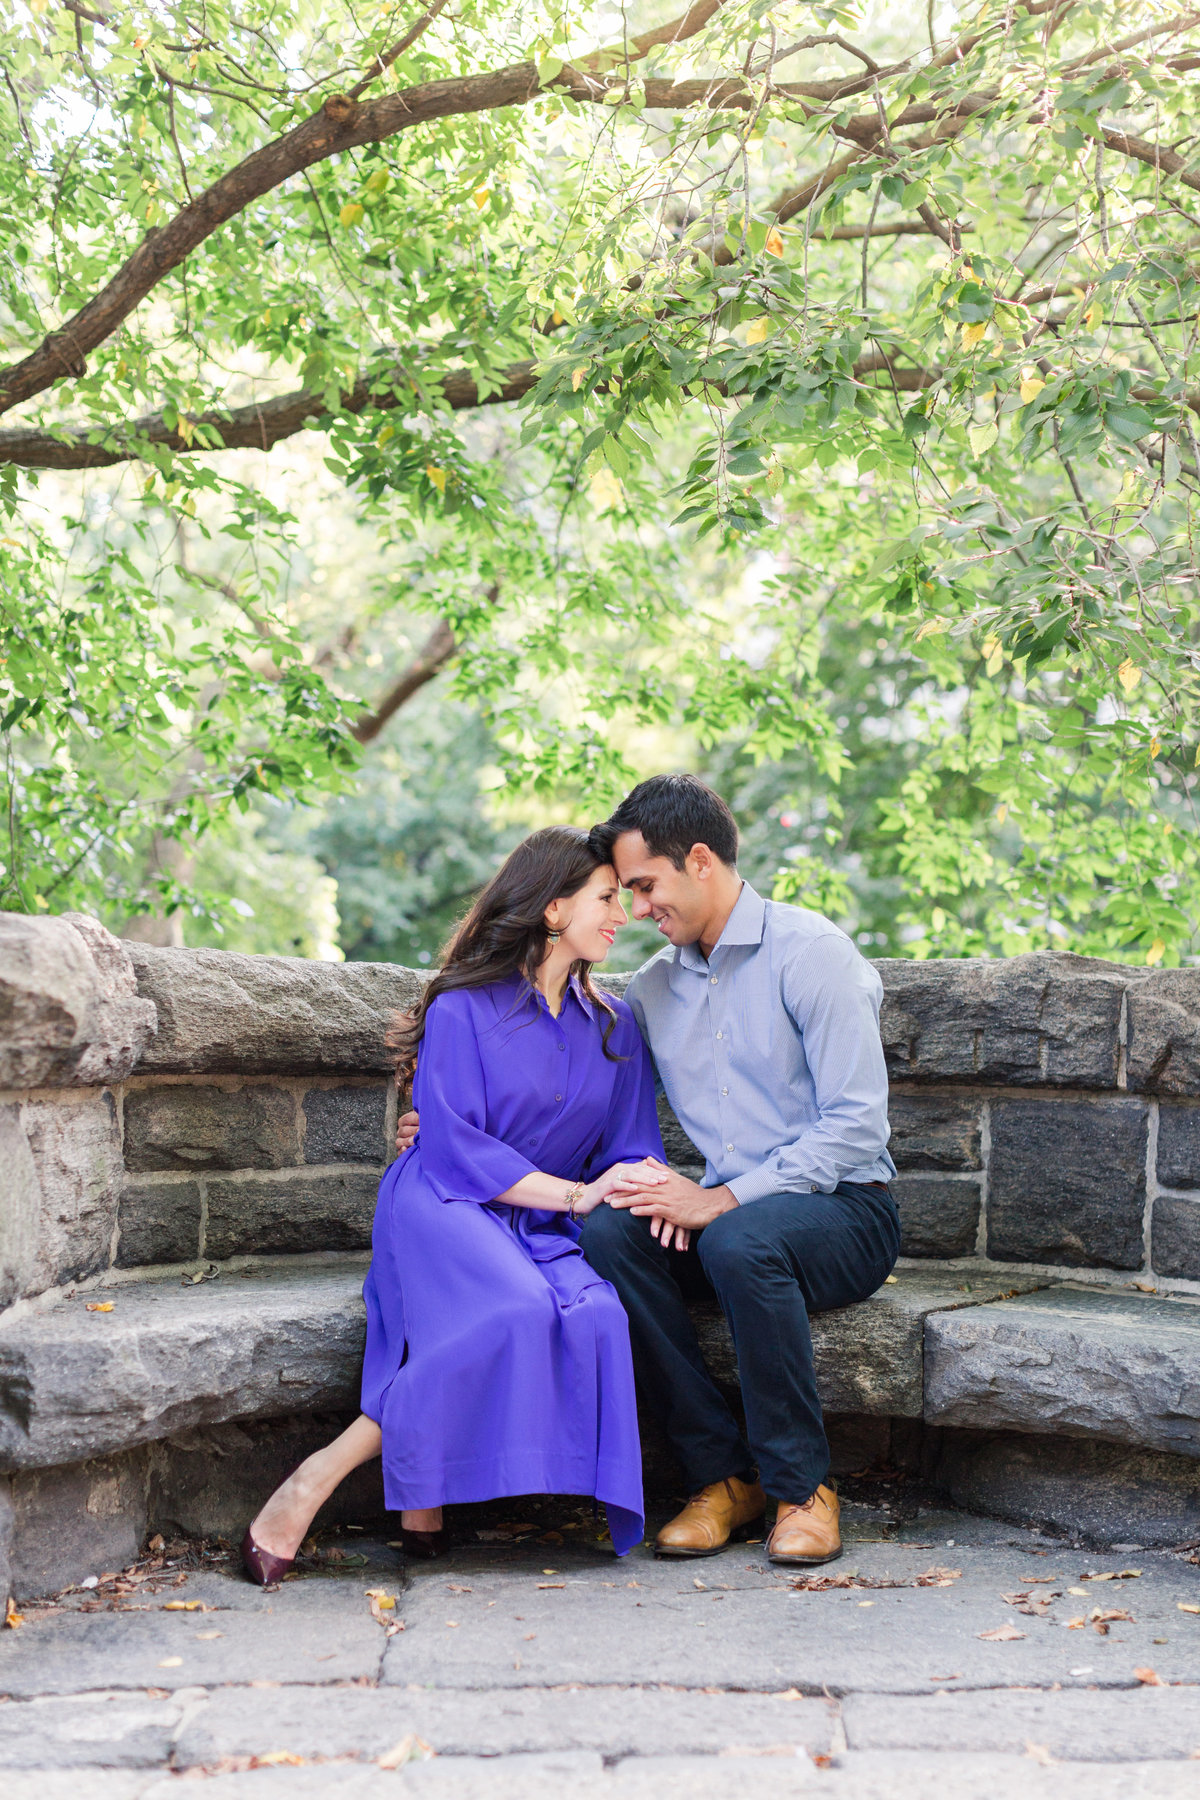 Lauren-Kearns-Central-Park-Engagement.jpg17